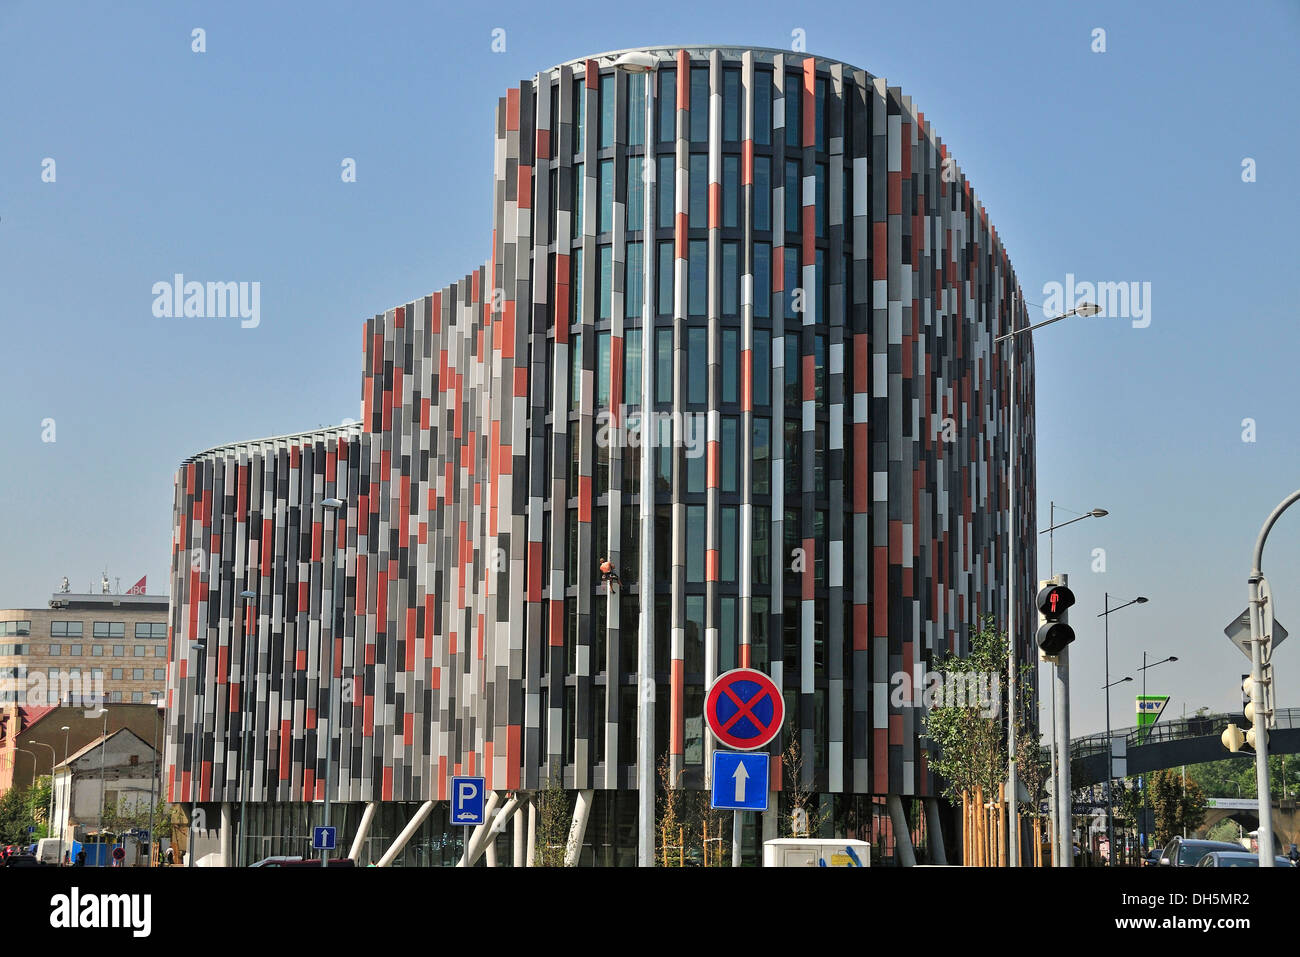 office building facade. Main Point Karlin, Facade Of A Modern Office Building, Which Won The MIPIM Award In 2012, PSJ Invest\u0027s Project With FibreC Building W